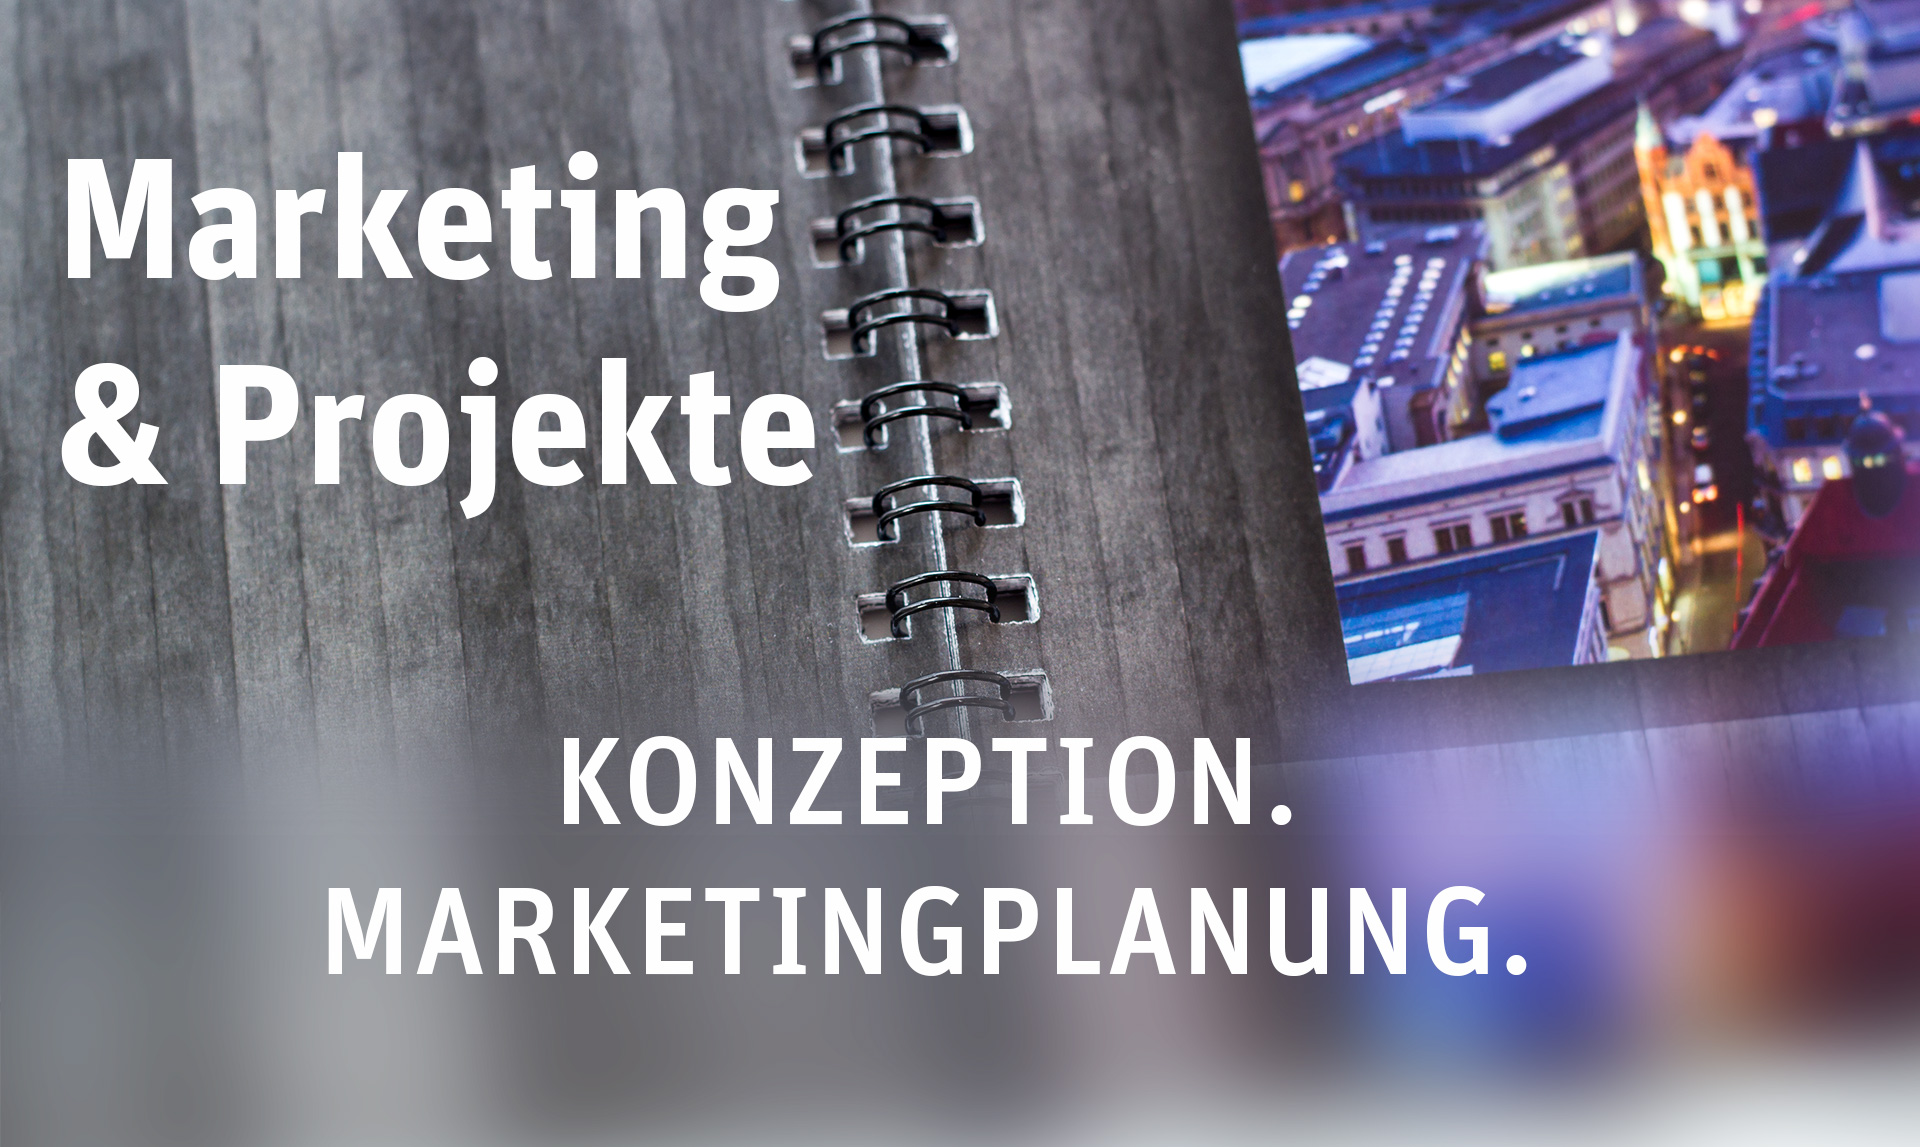 Leistungen von ProjectPartner - Marketingkonezption